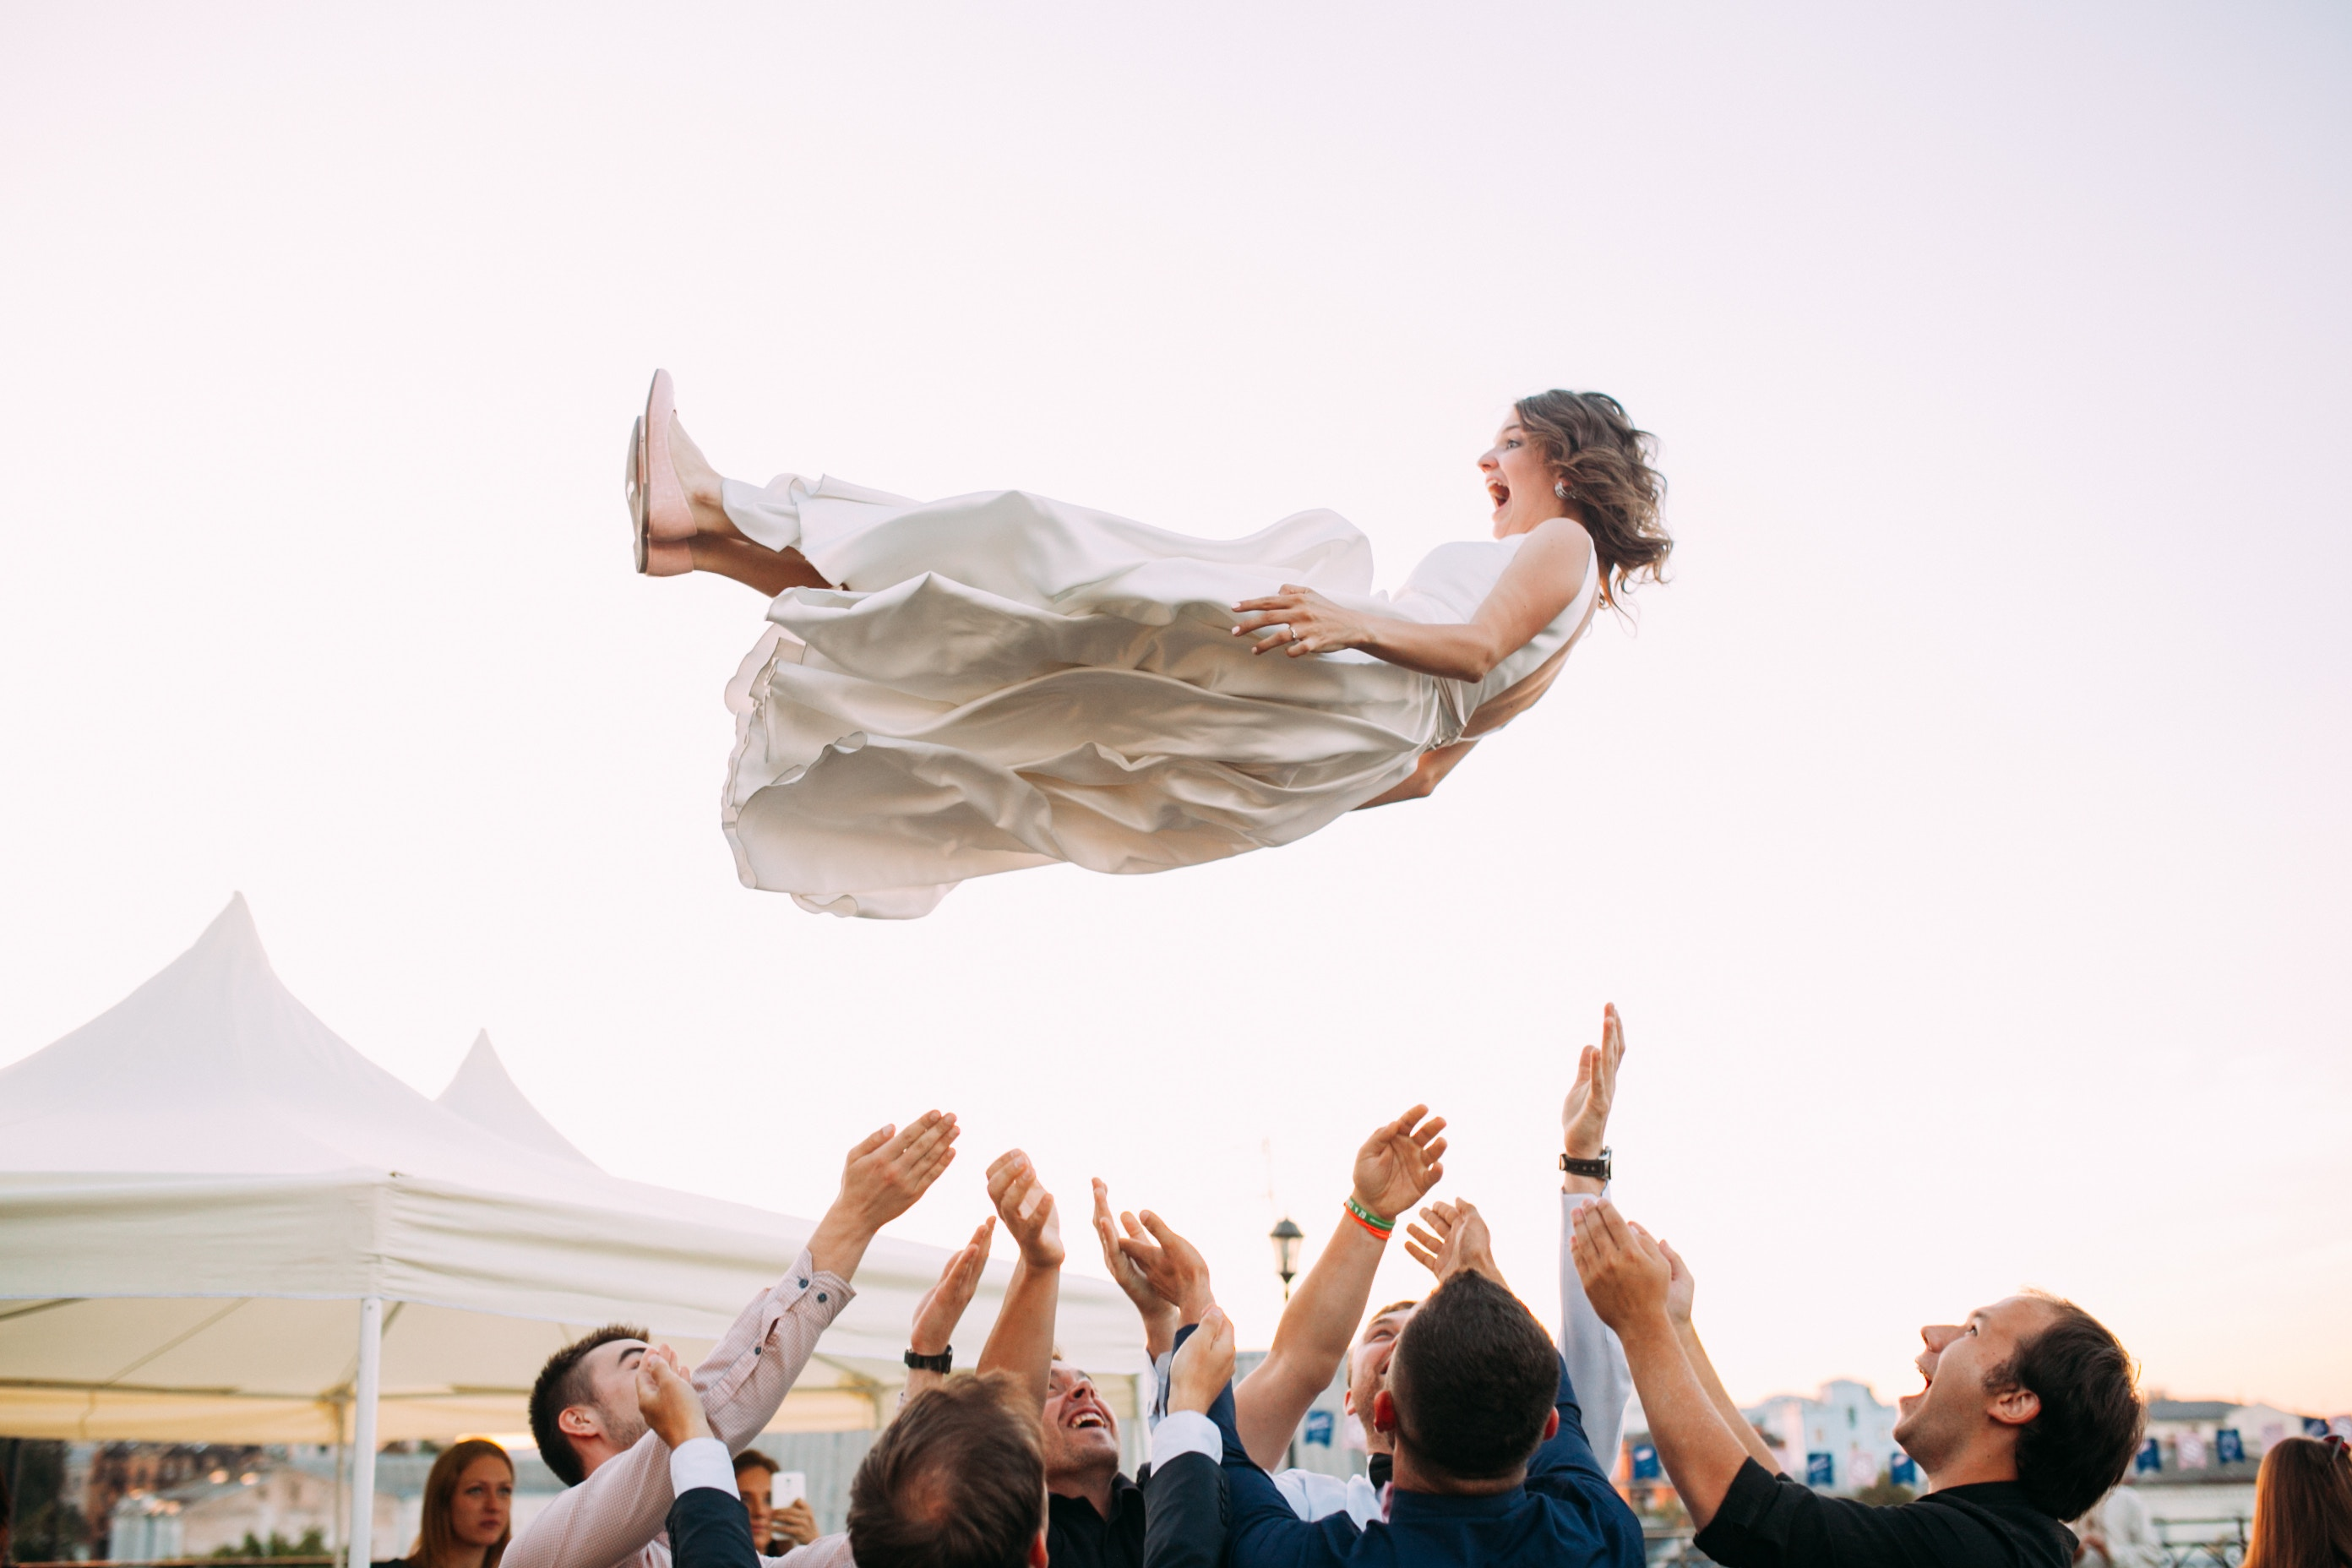 New wife thrown in the air as part of the wedding celebration. Brooklyn Dance Lessons bridesmaids package.